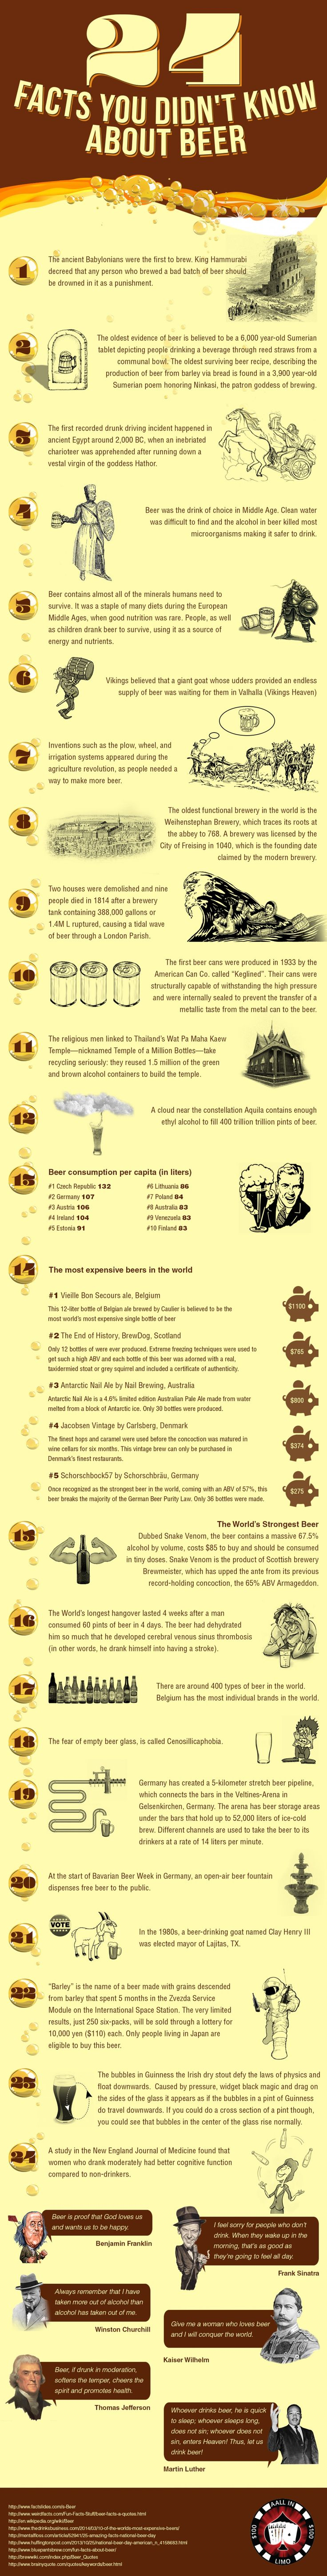 #infographic #beer #brewing #facts